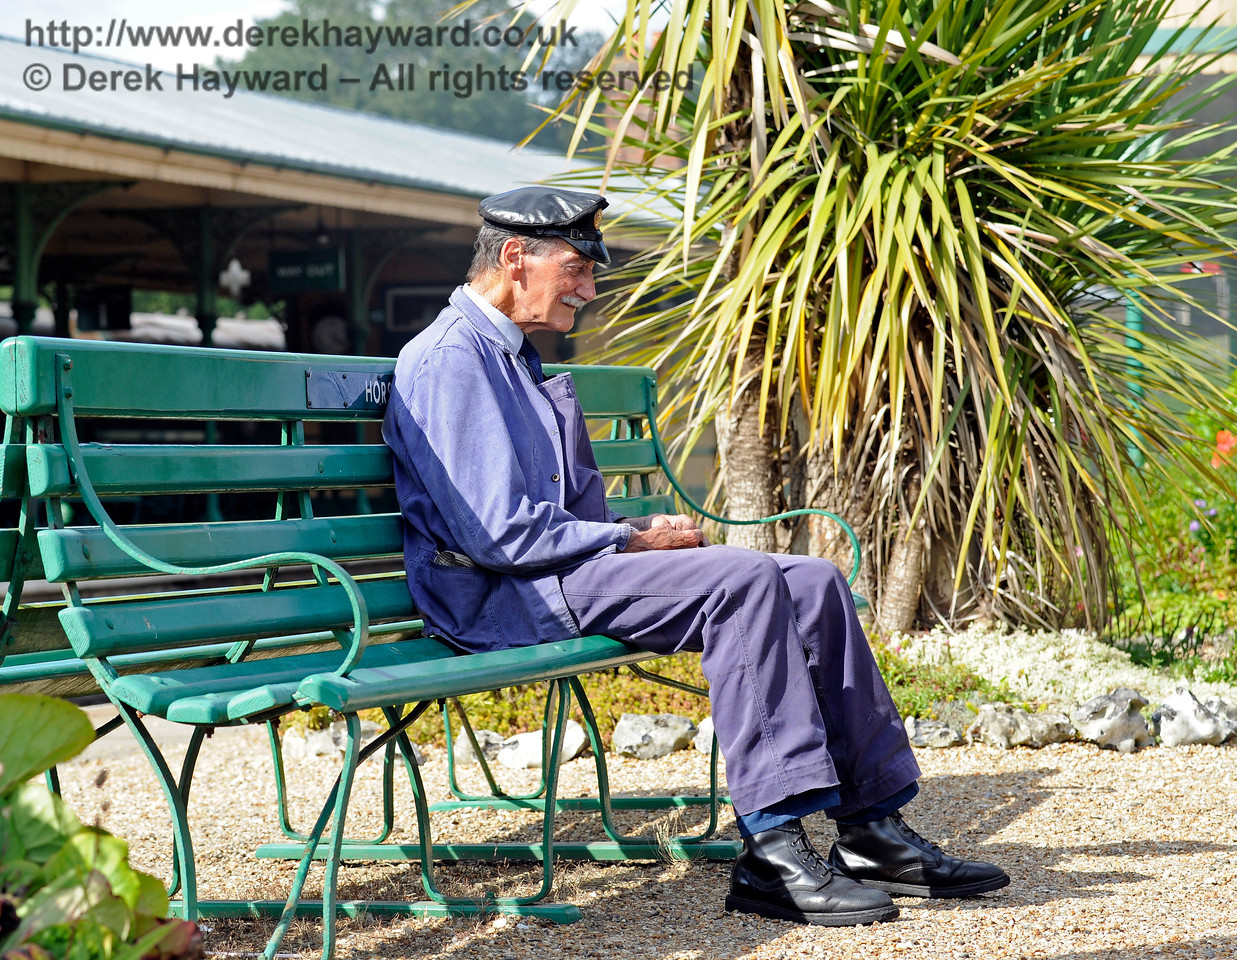 Clive Groome taking a break at Horsted Keynes. 06.08.2017 15893